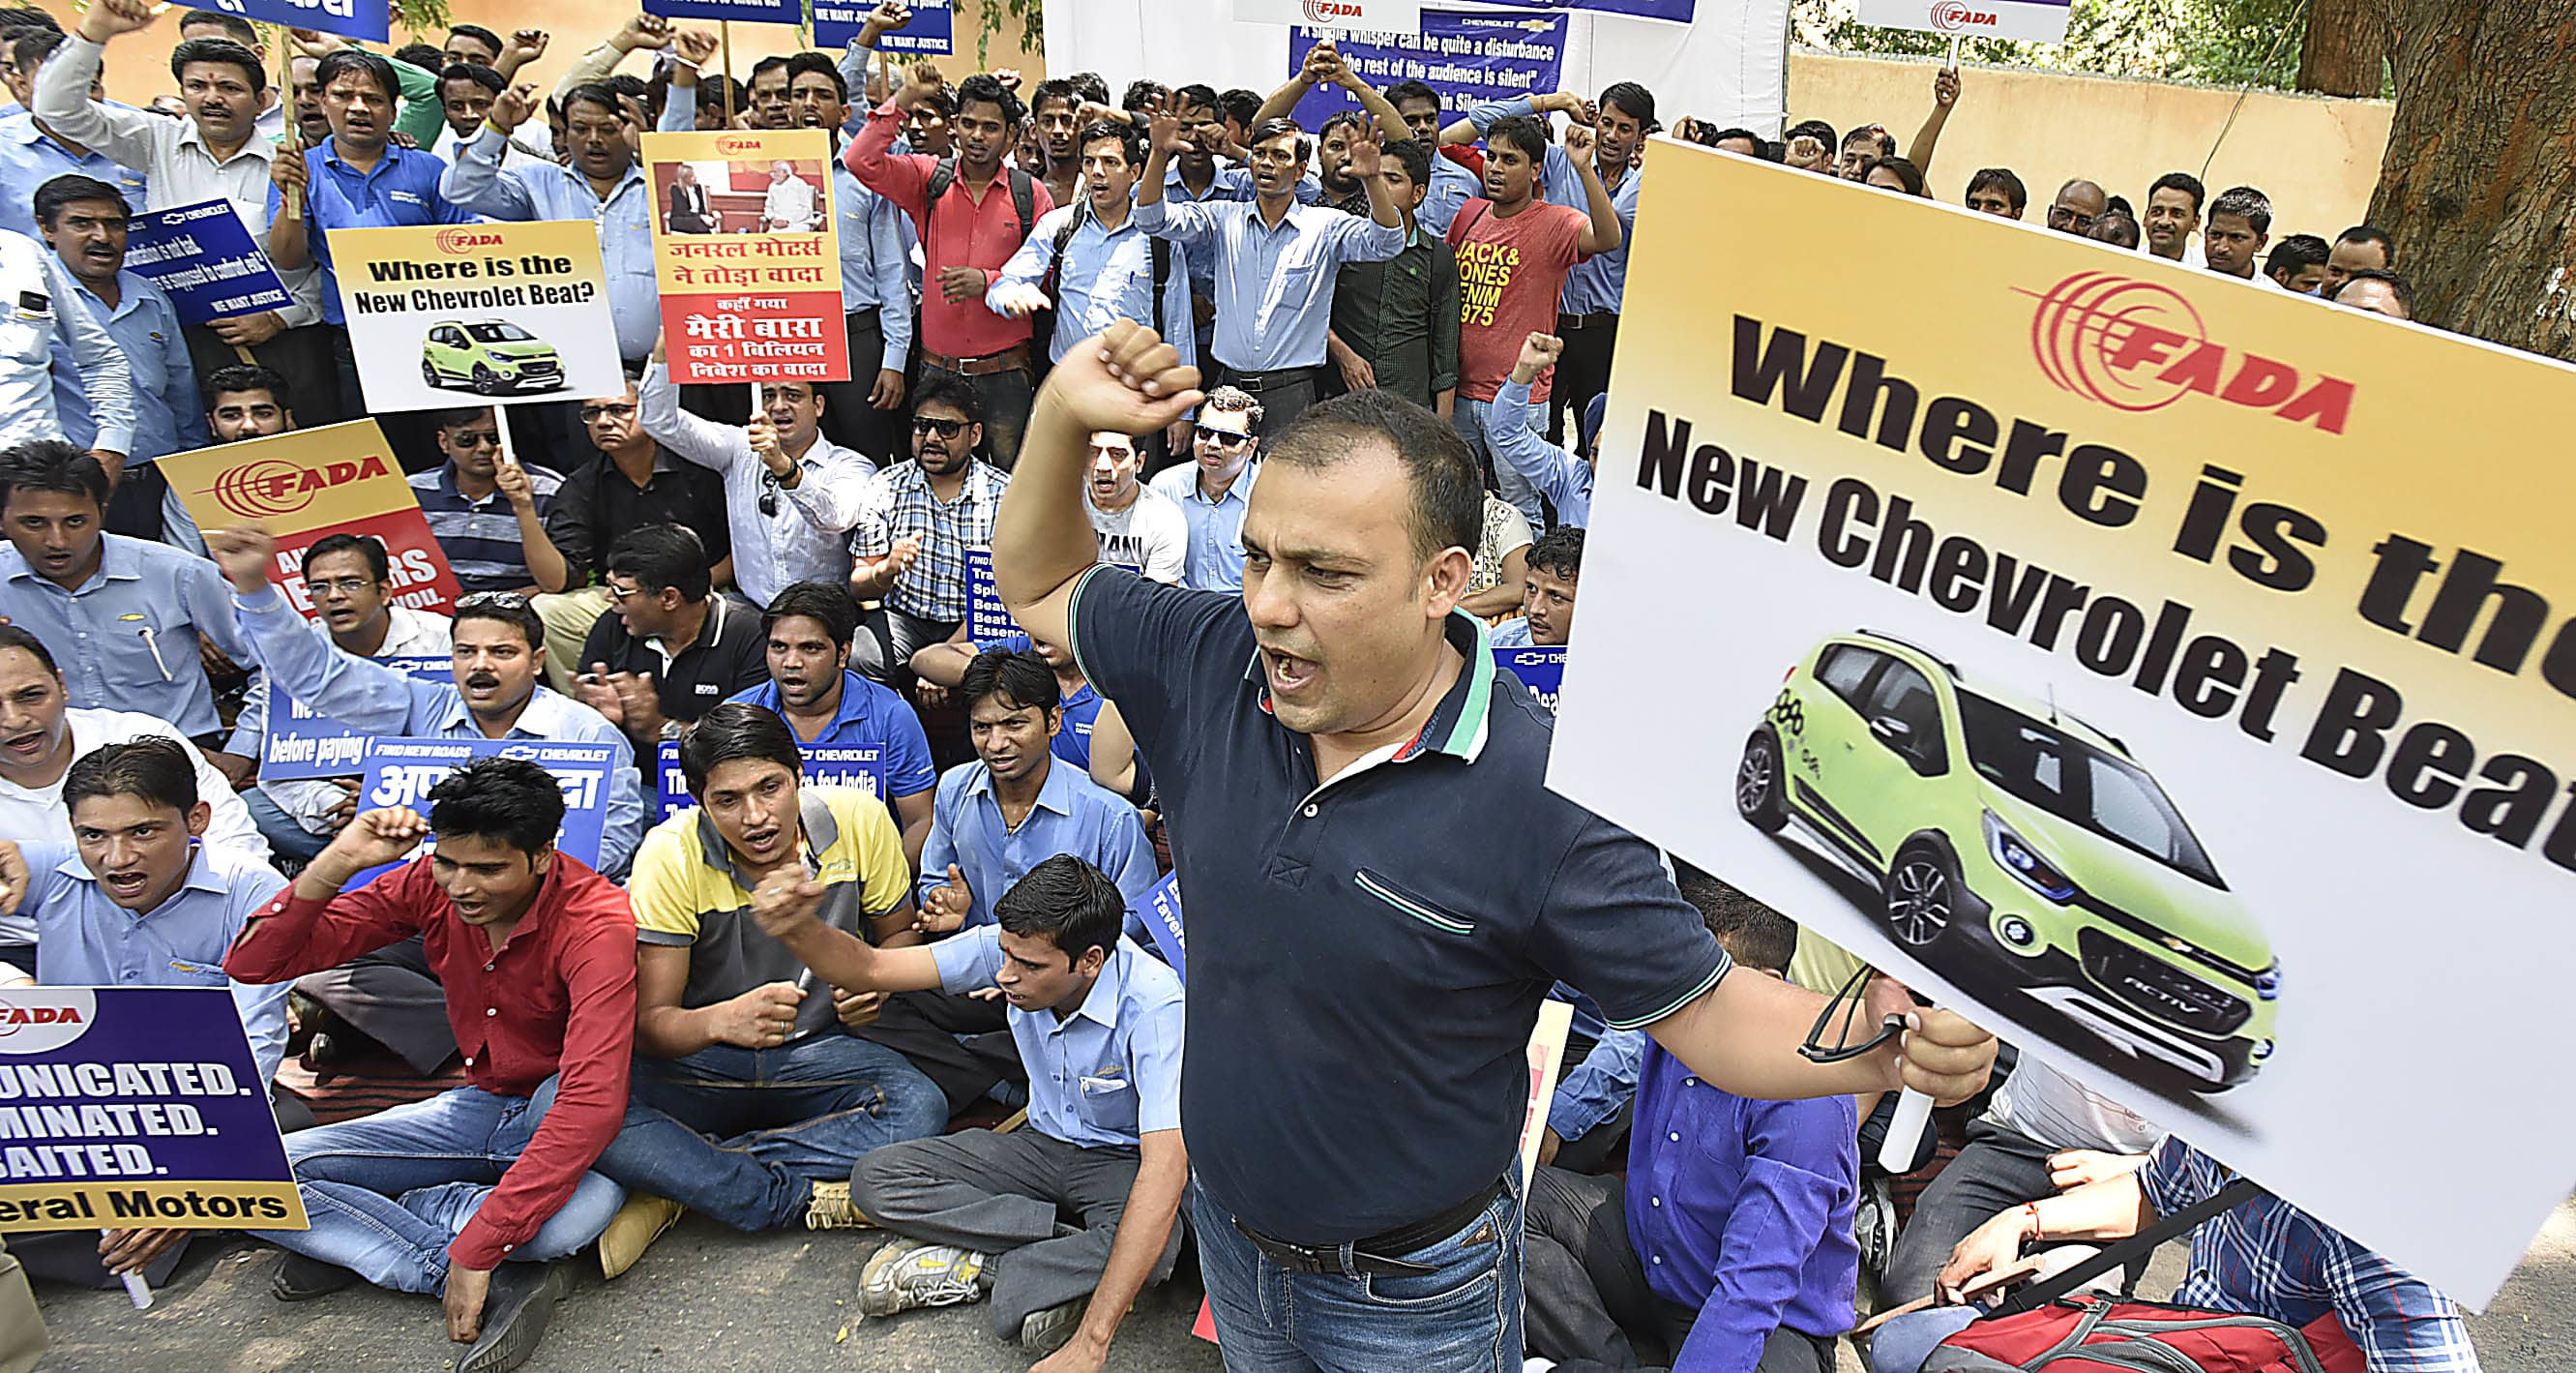 What GM leaving India means for US automakers